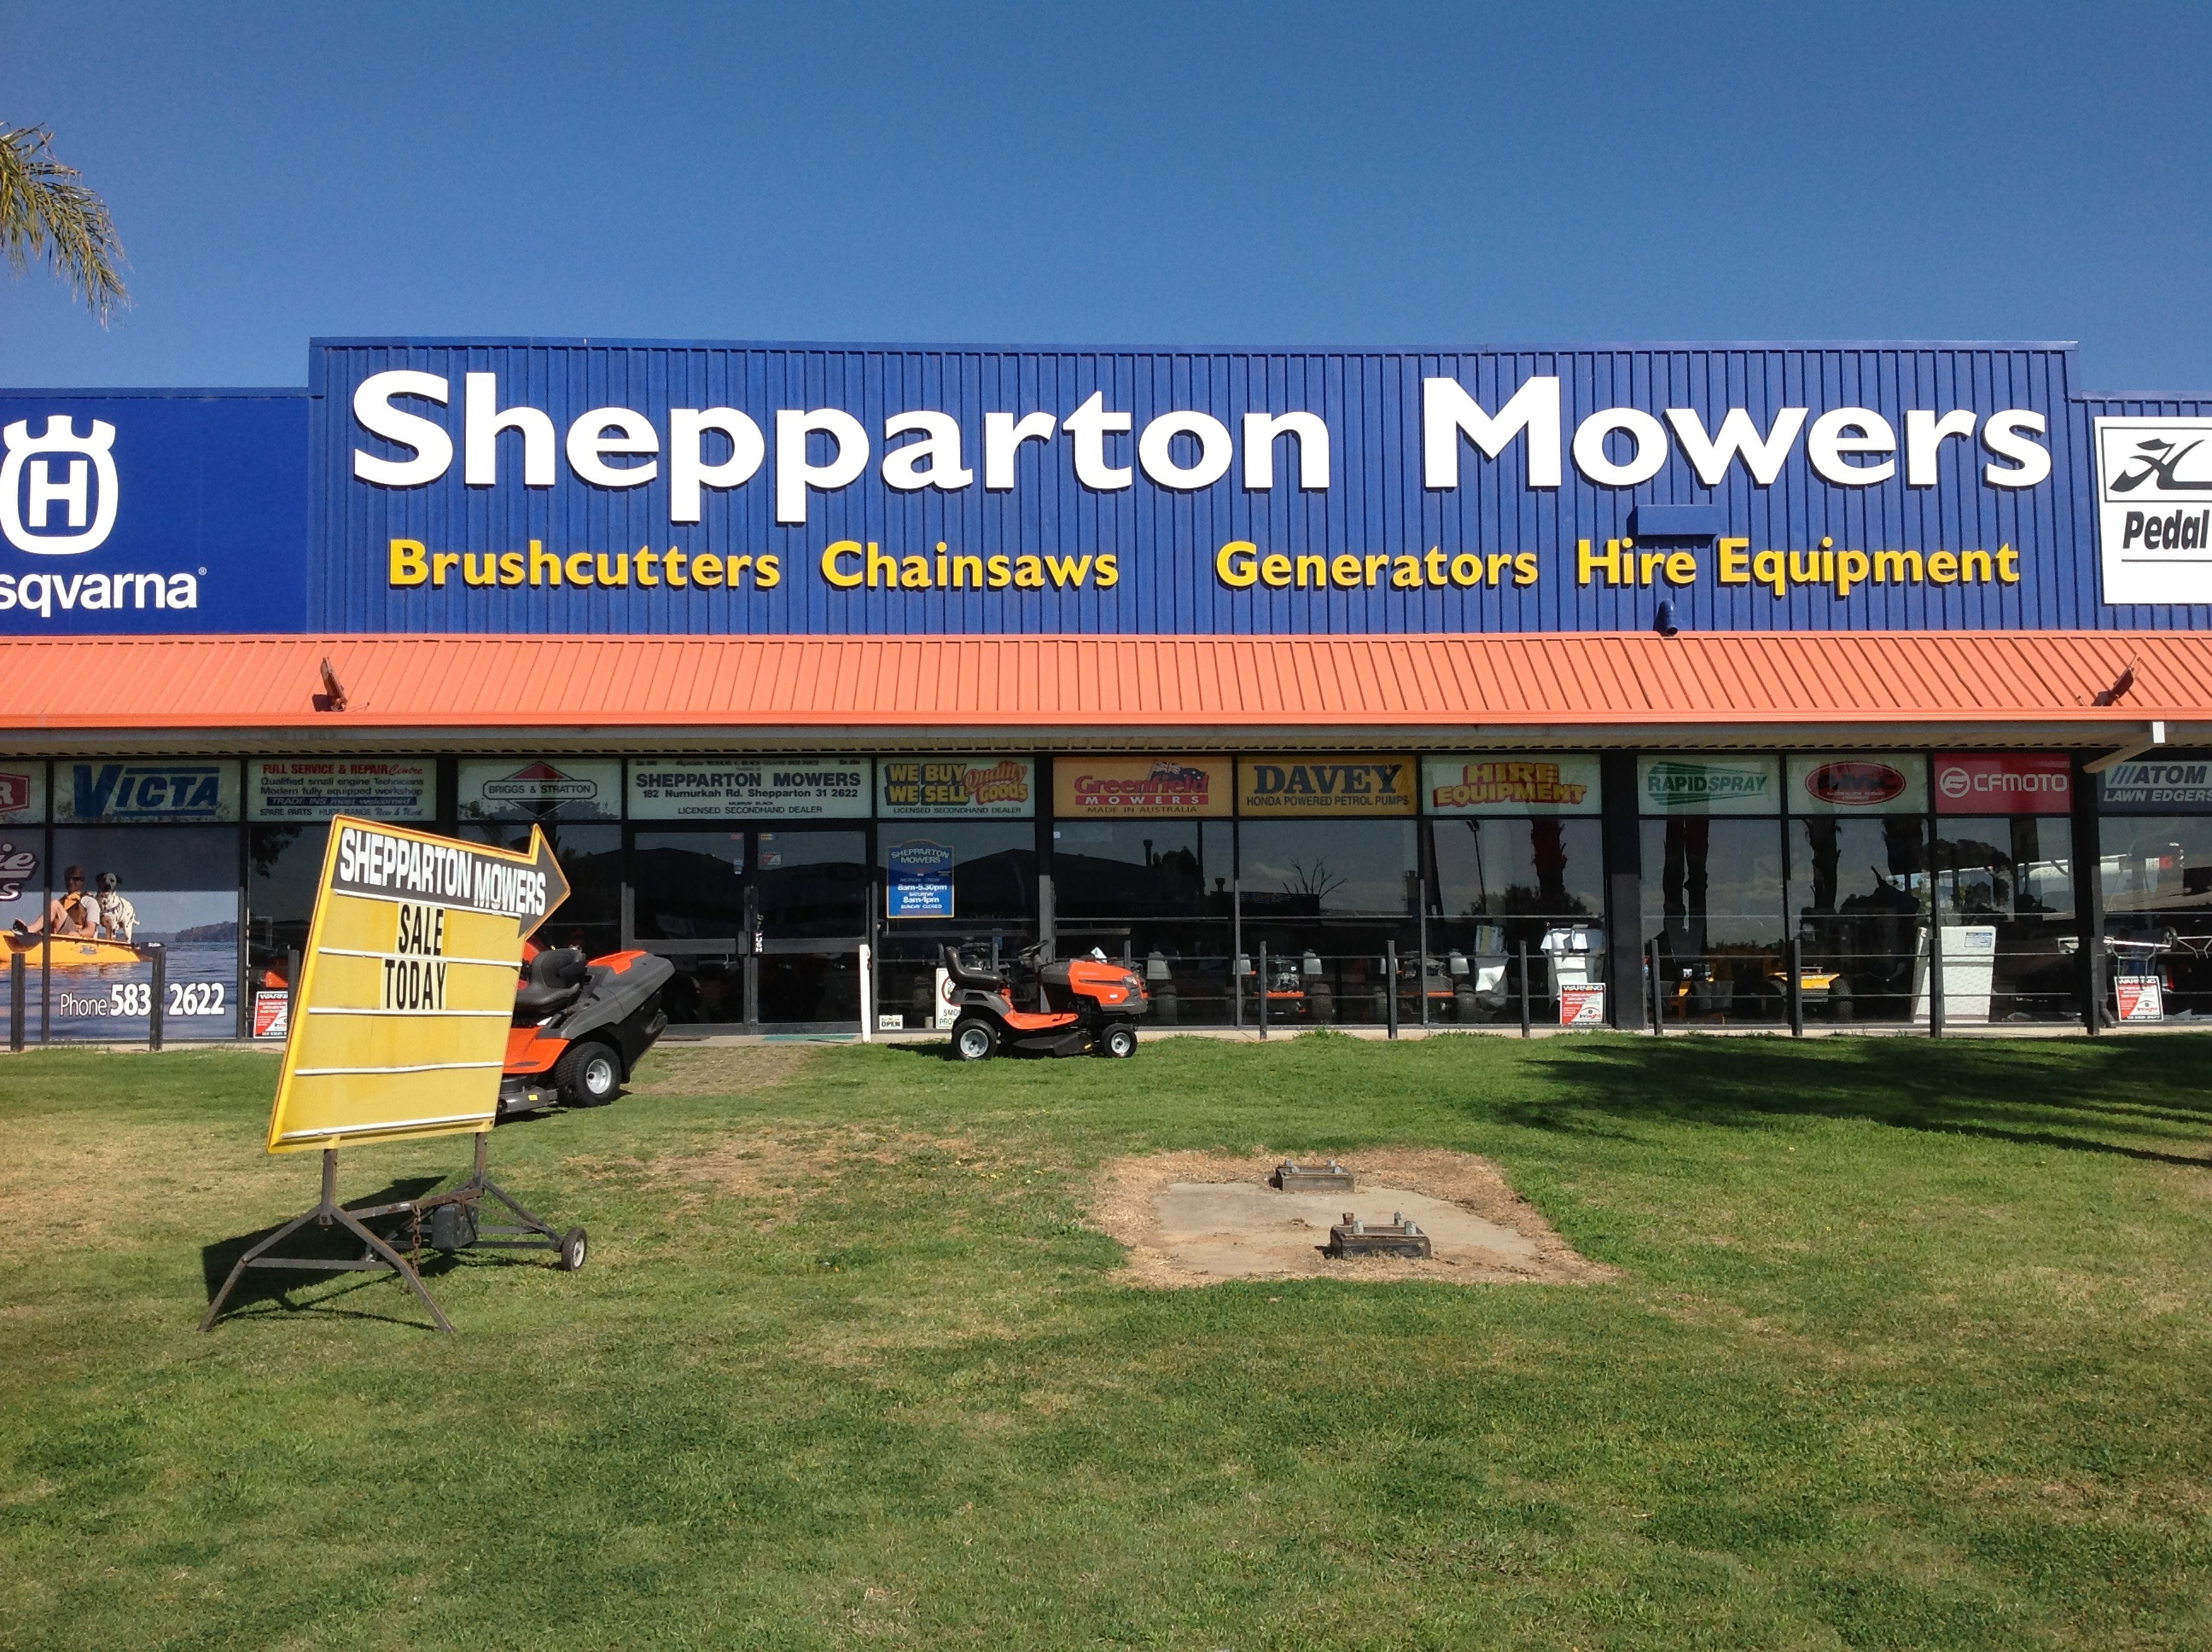 Major retailer of Outdoor Power Equipment-chainsaws,lawnmowers,engines,pumps,etc